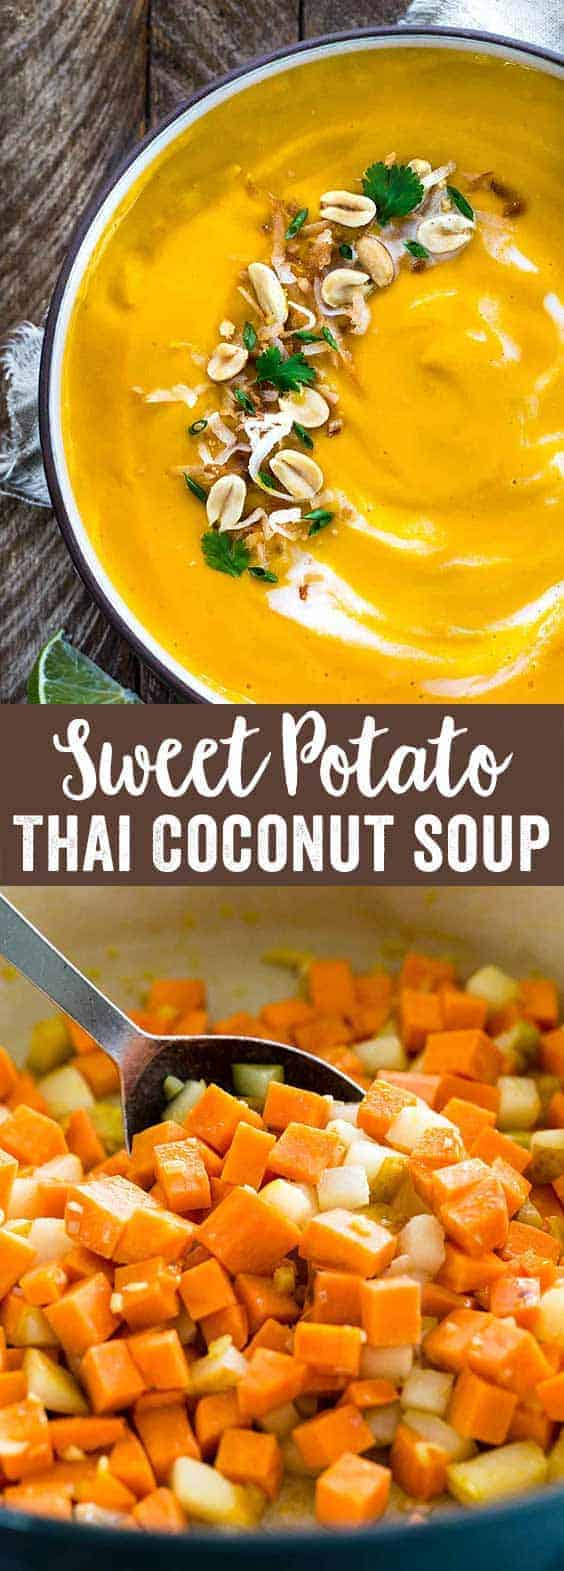 Thai coconut soup made with bold, exotic flavors! This recipe uses sweet potatoes and pears for a light and healthy twist on a favorite Asian dish.